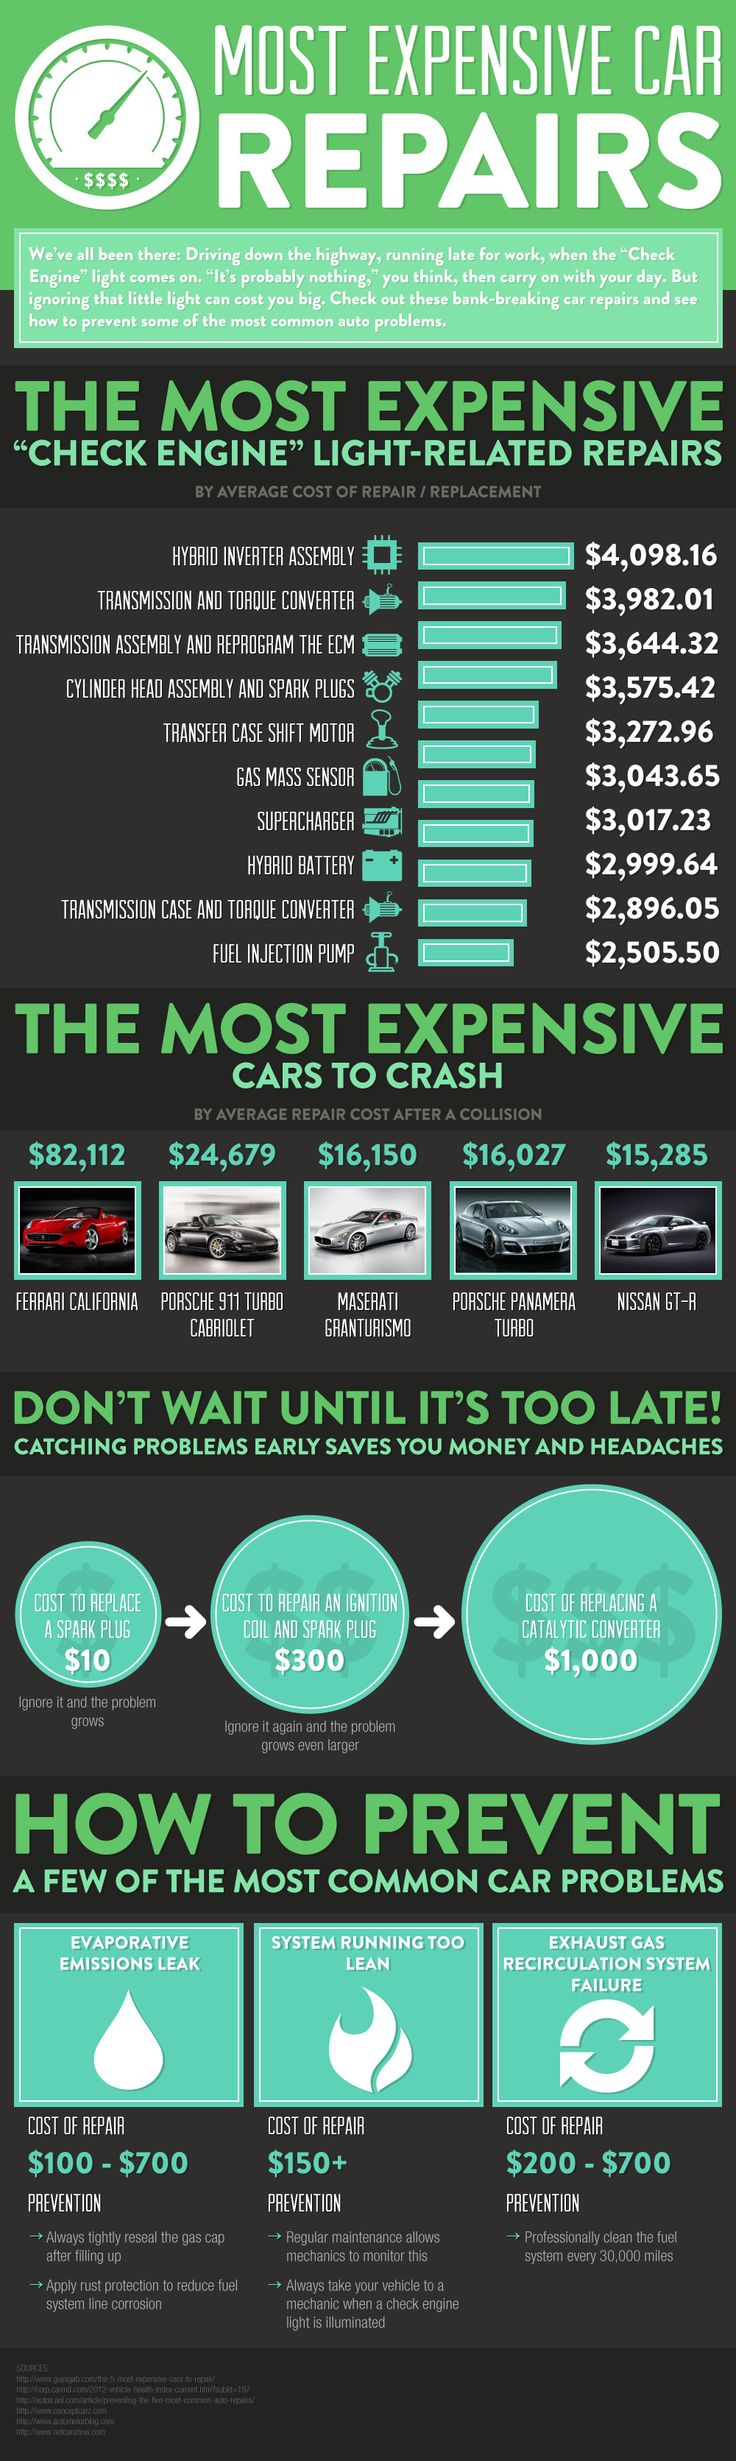 The 25 Best Engine Replacement Cost Ideas On Pinterest Mate Argentina Mate Drink And Fligh